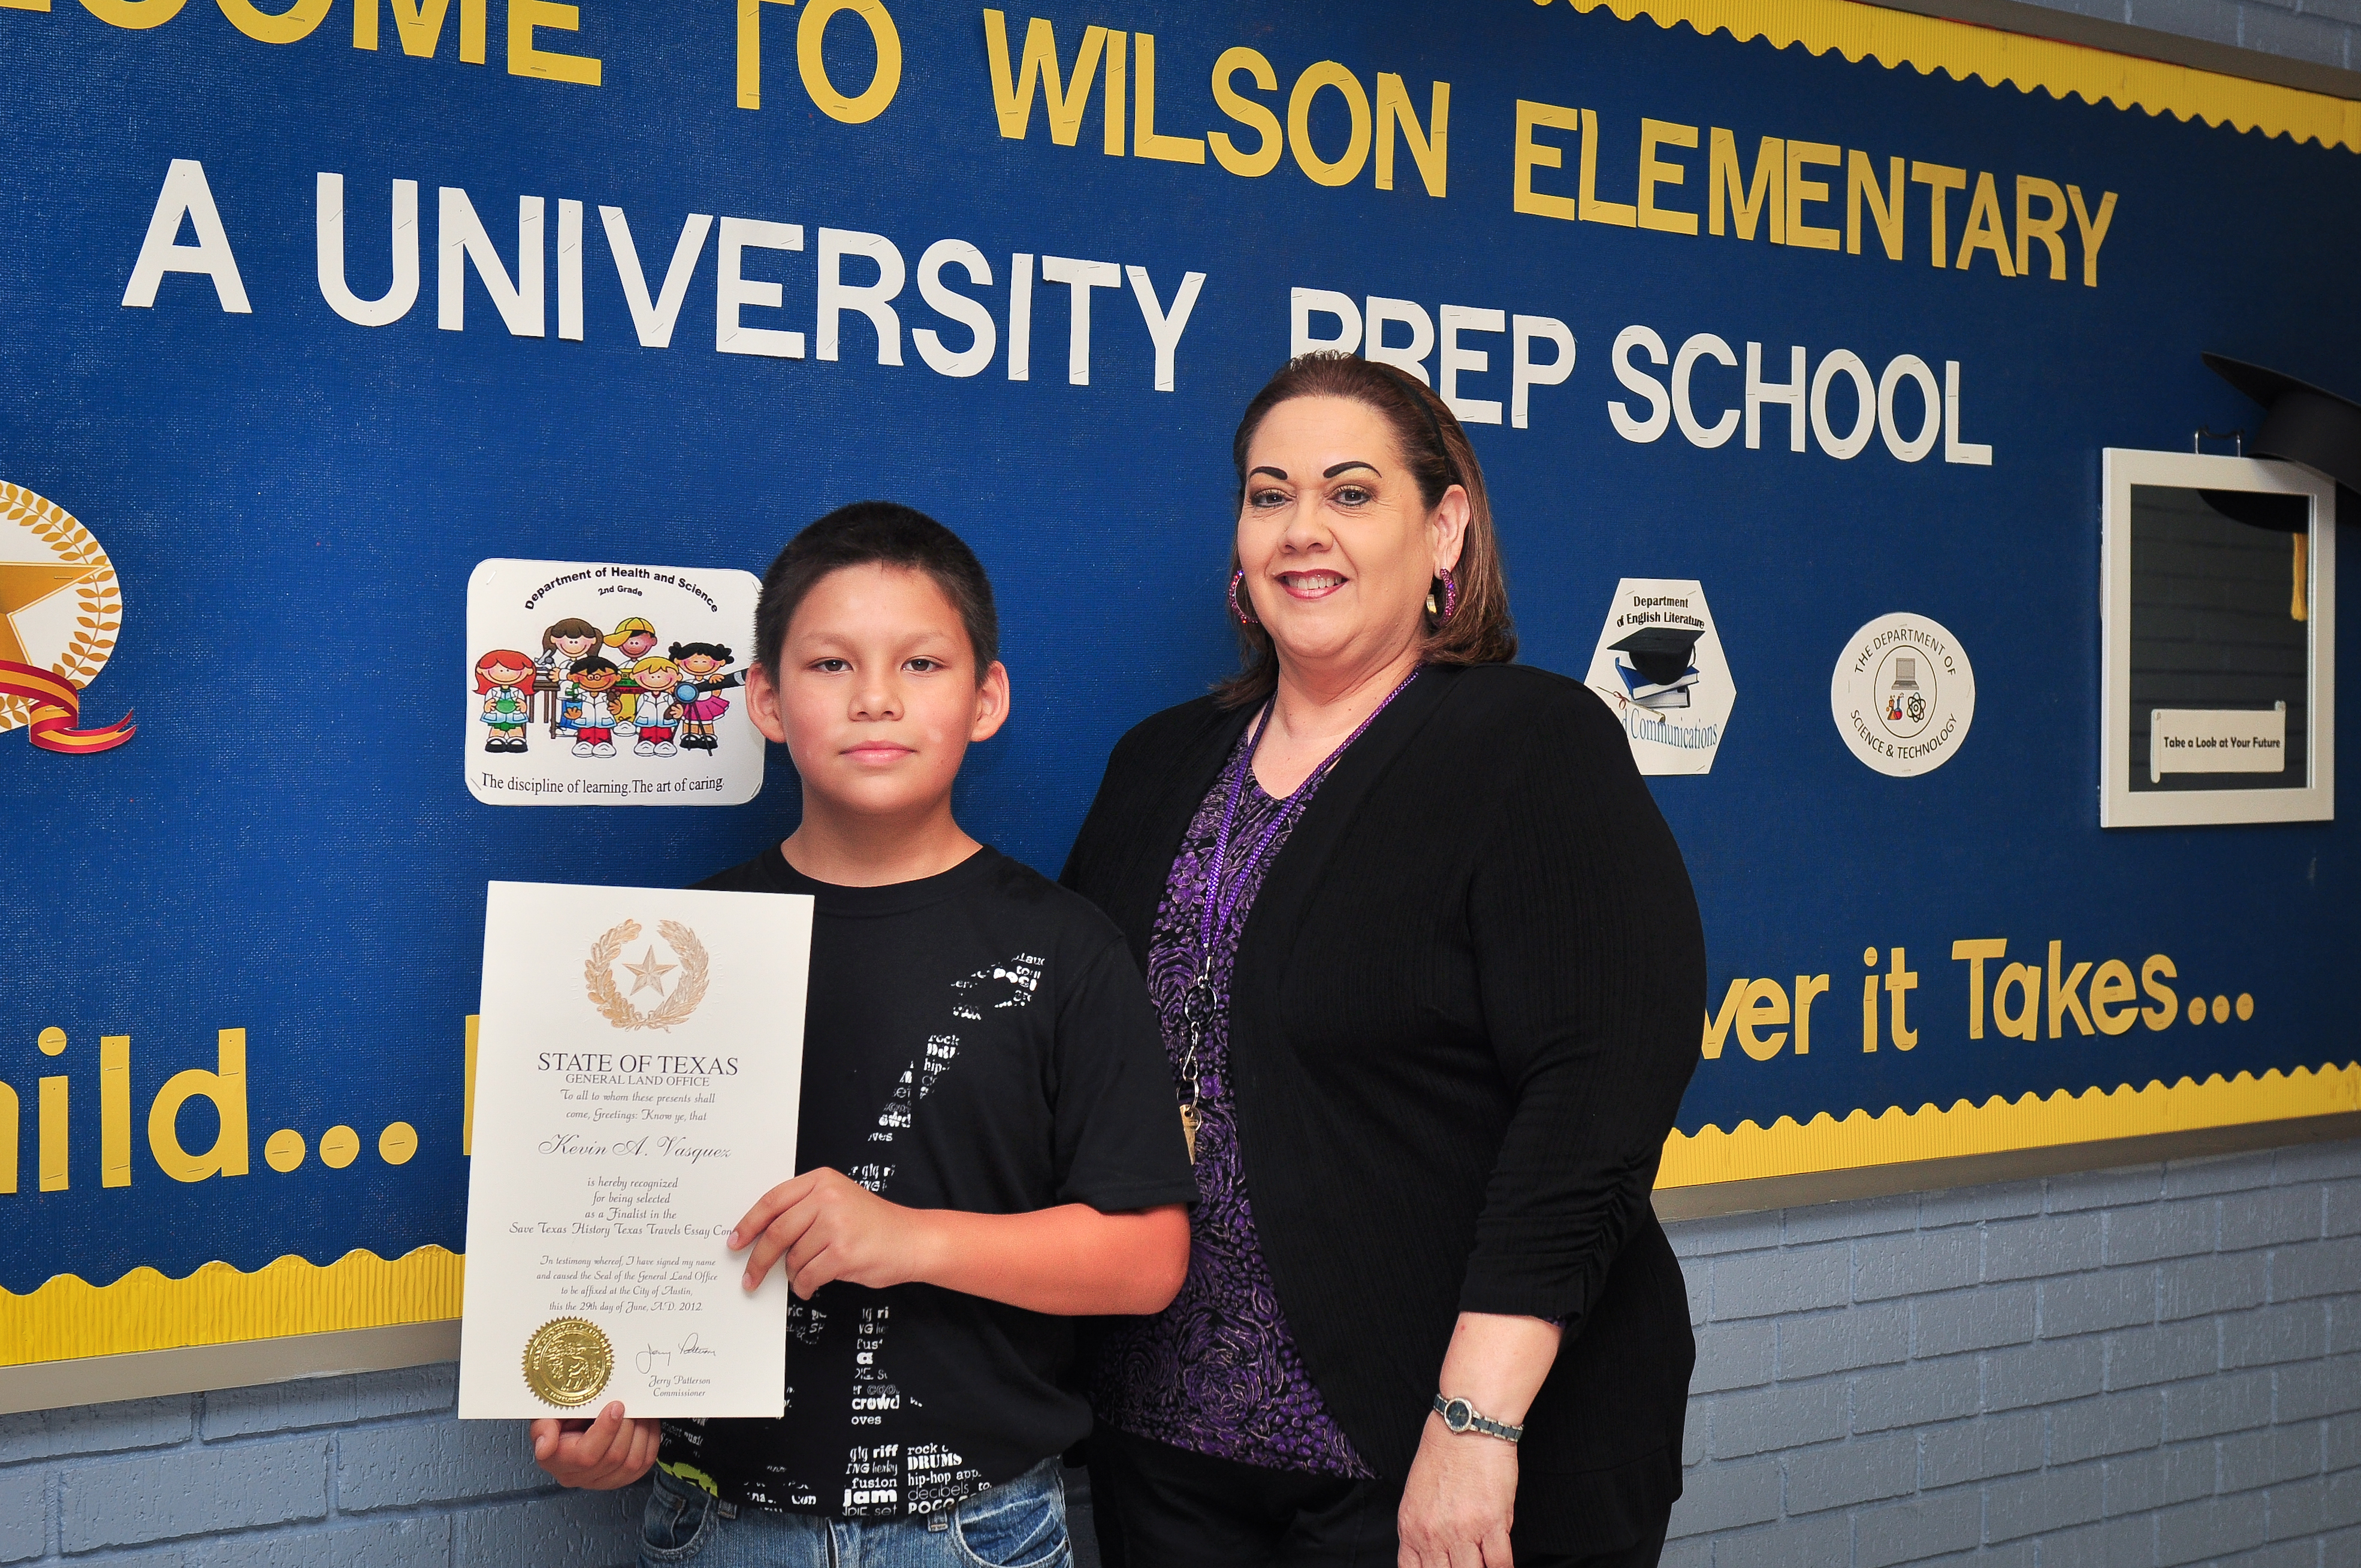 Wilson Elementary student receives state recognition for essay